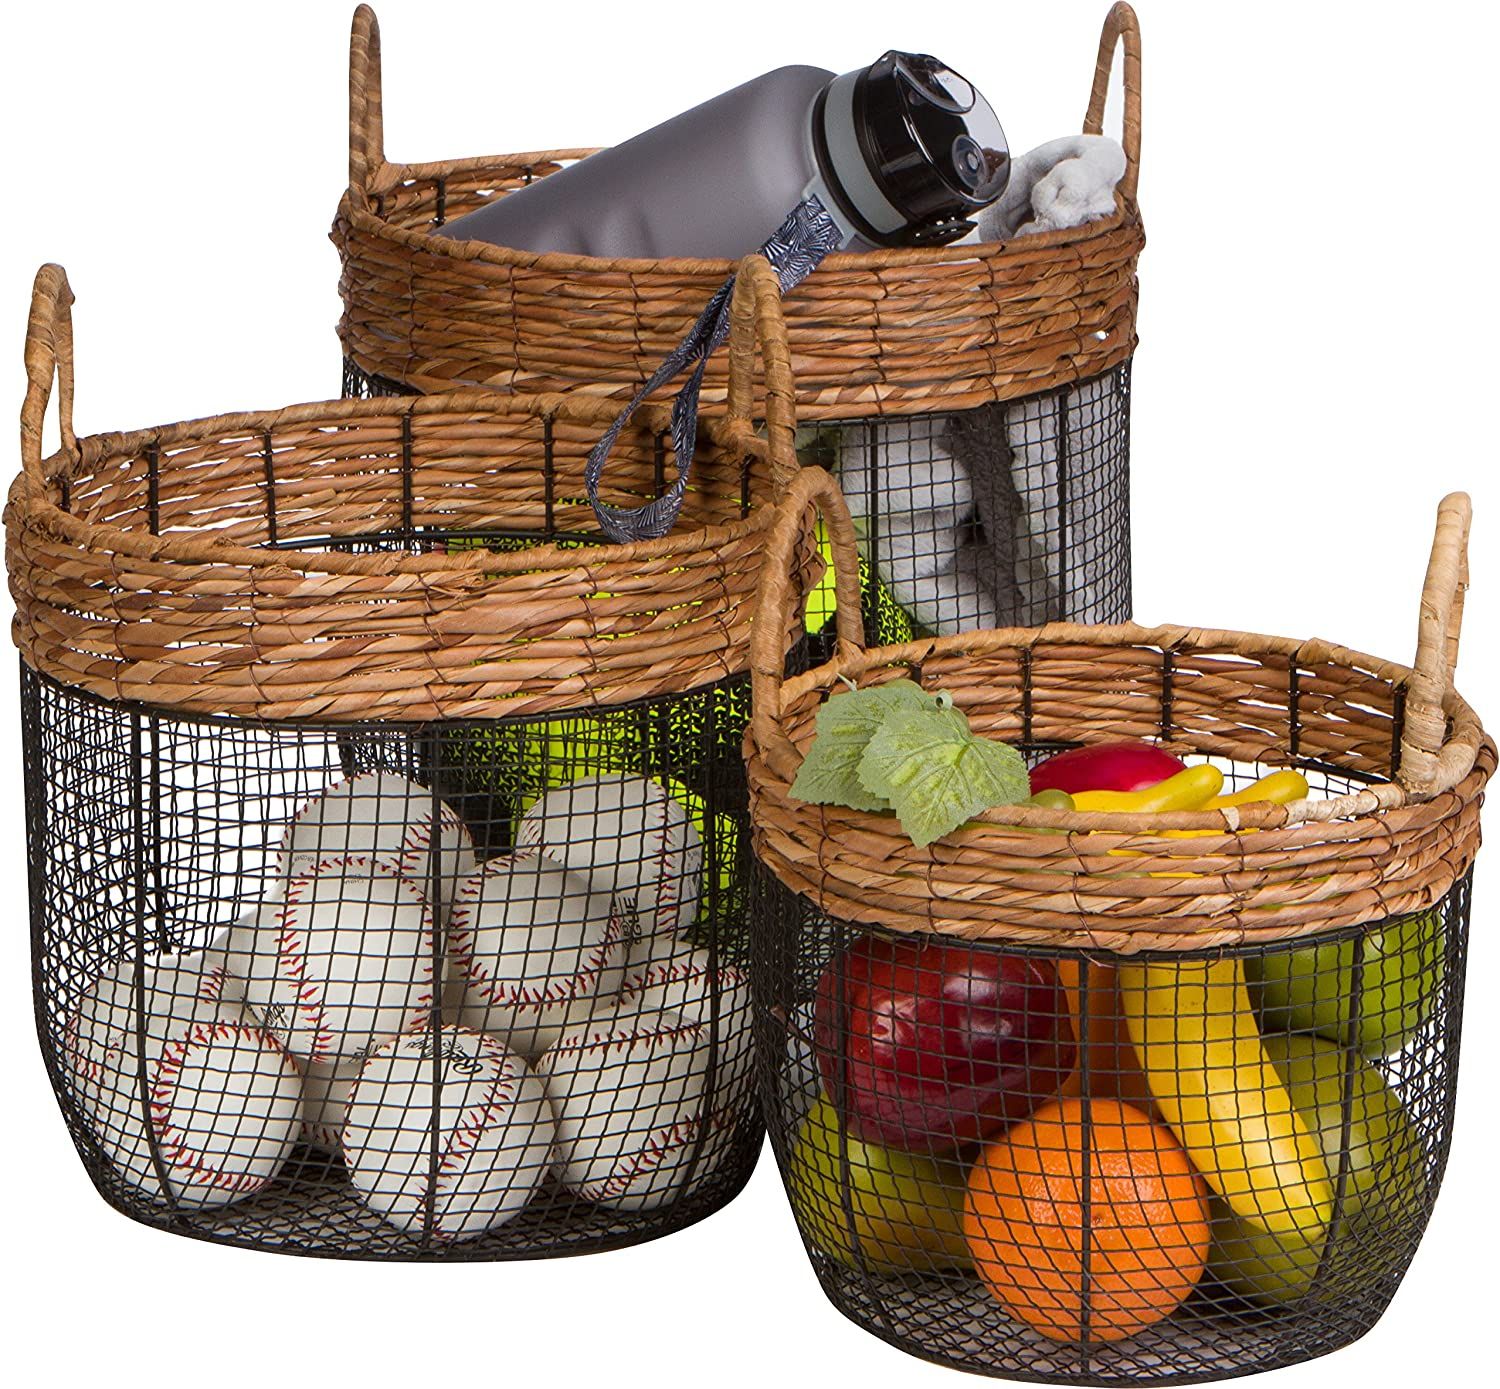 Trademark Innovations Oval Wire Tall Garden Home Décor Baskets with Wicker and Handles - Set of 3